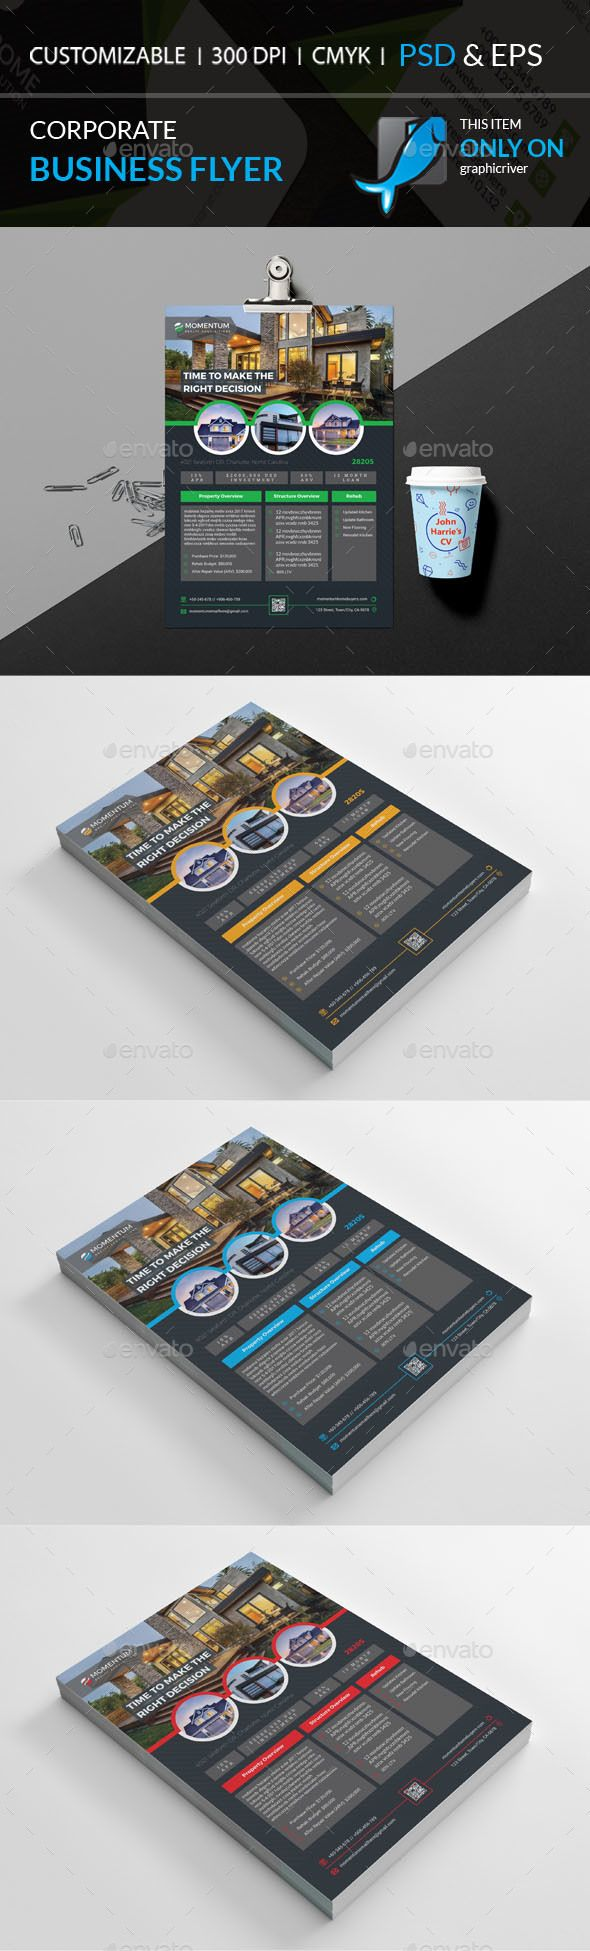 Corporate Business Flyer by Galax-e Corporate Business FlyerWell Layered Organised (EPS & PSD), 210×297, CMYK , Print ready,Text/fonts/colors editable. Whats you get